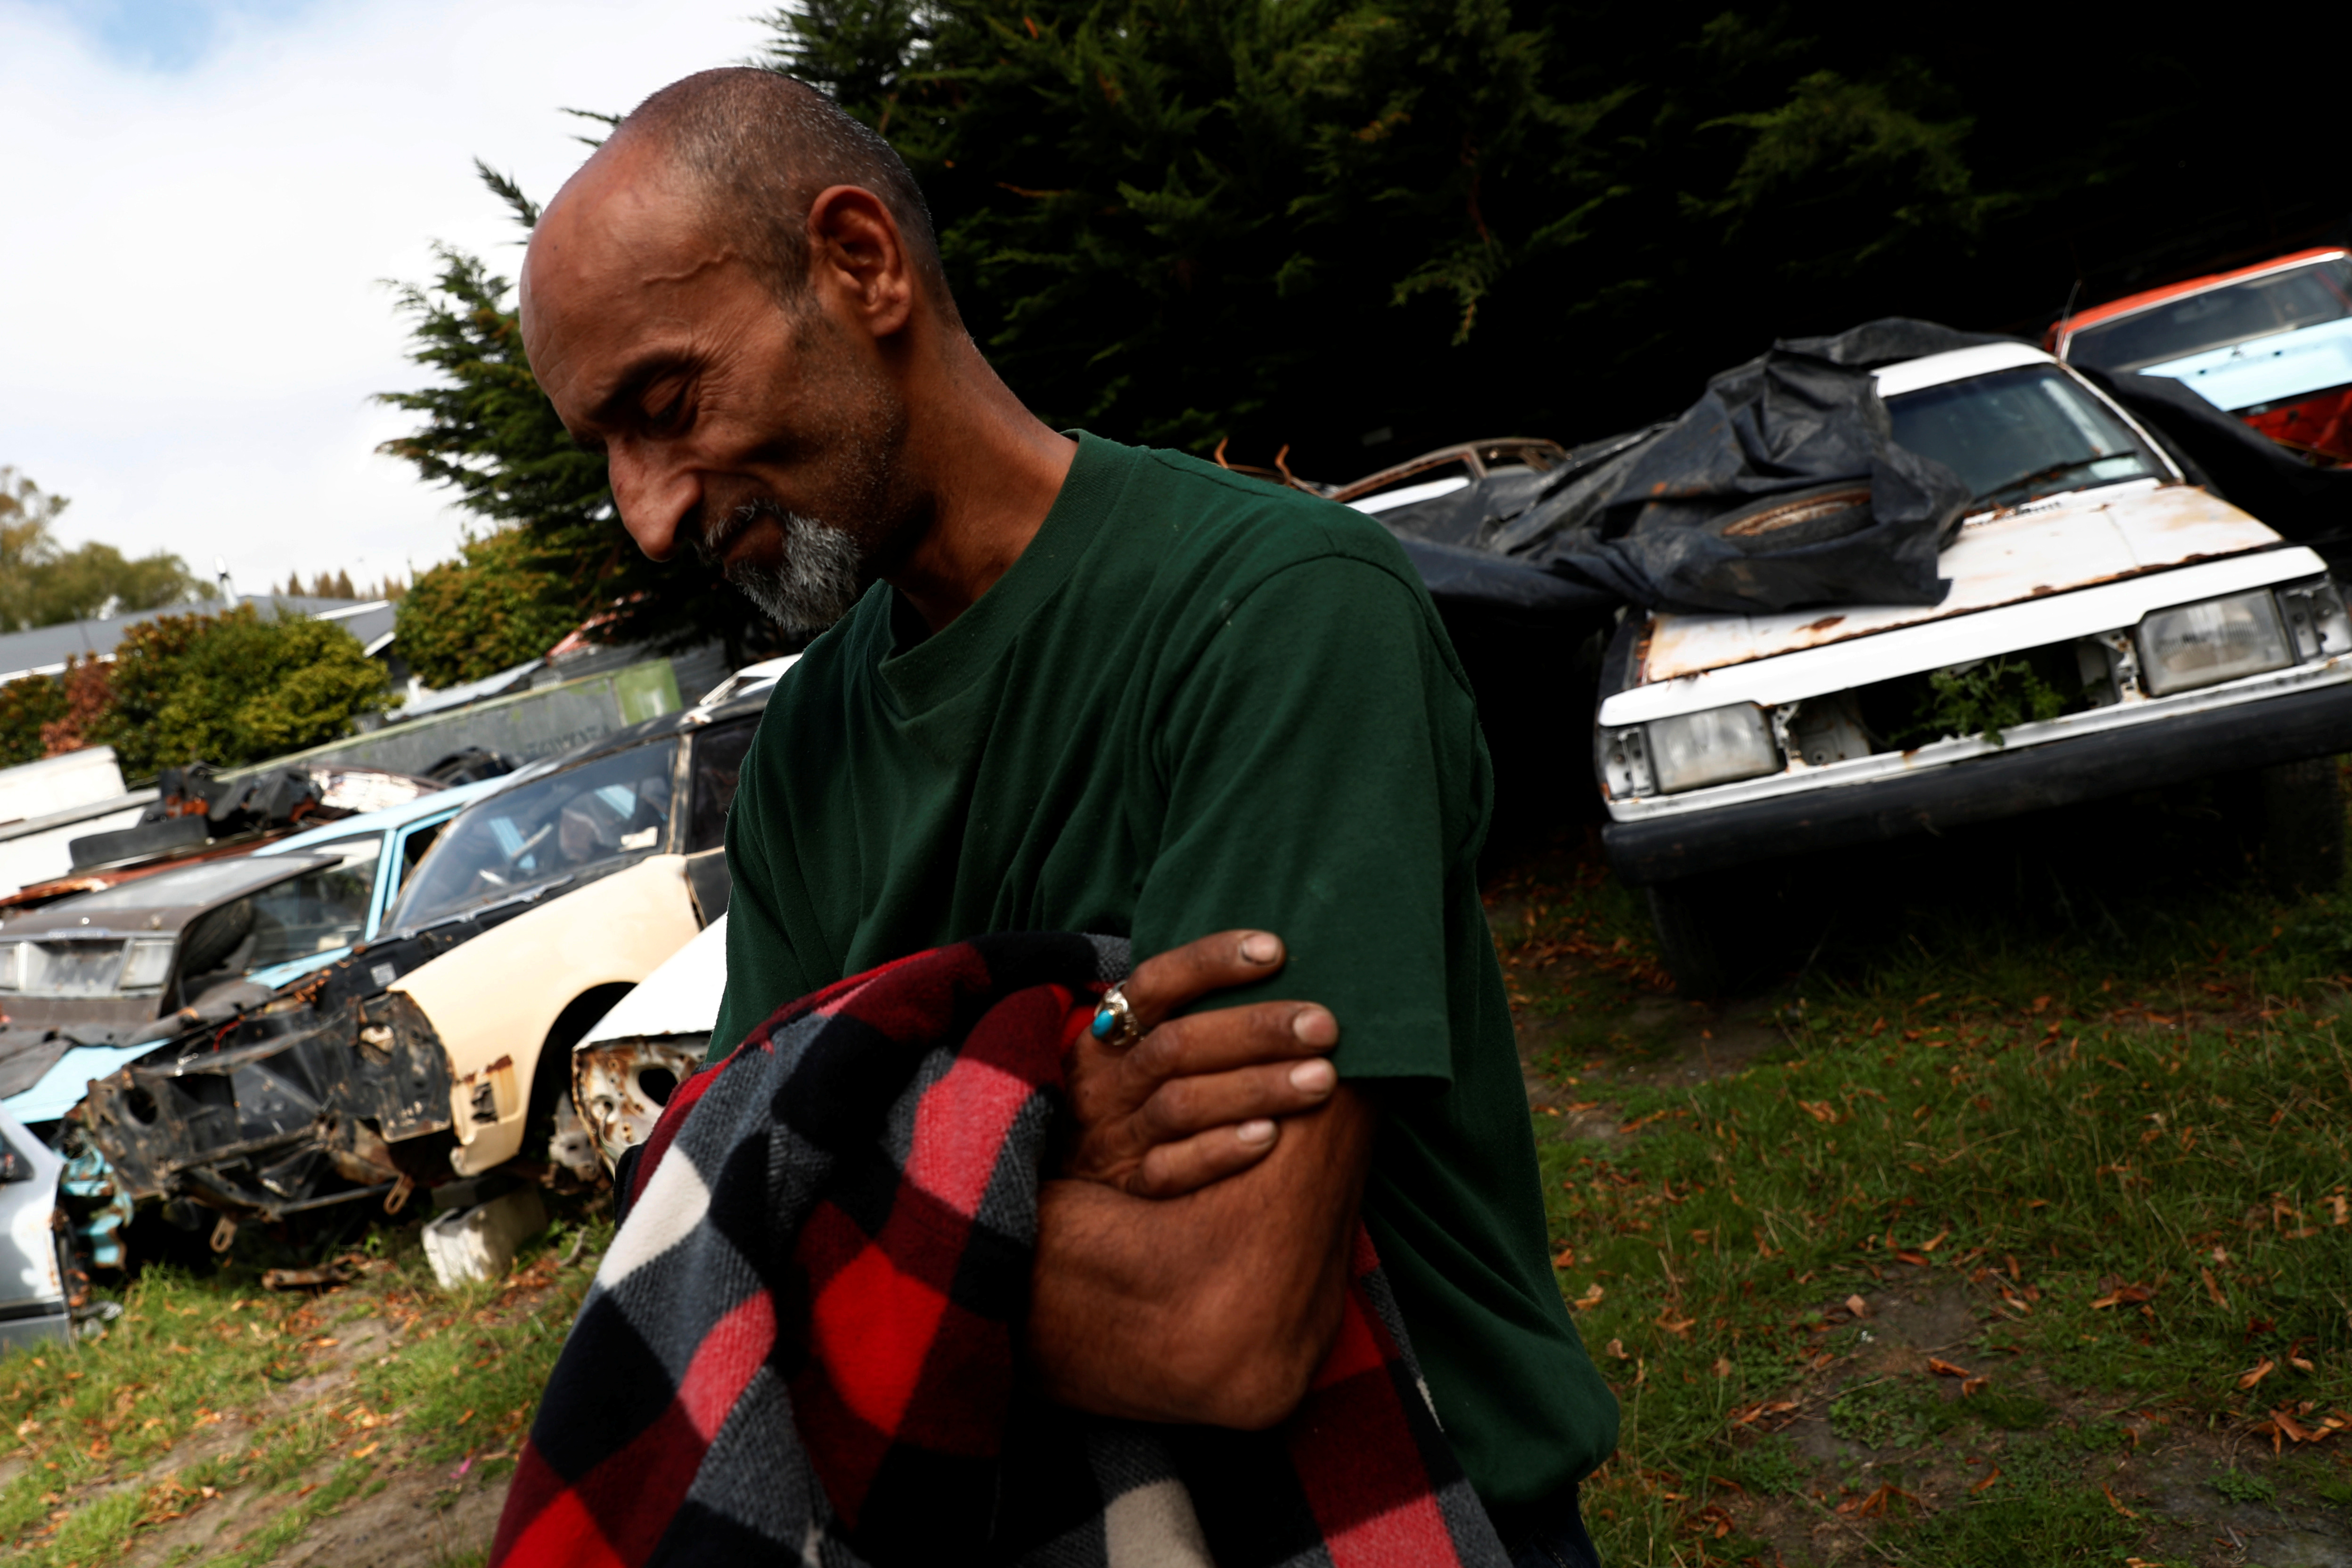 Omar Nabi, 43, originally from Afghanistan, takes a moment to recompose himself as he speaks about his late father, Haji-Daoud Nabi's love for cars at Haji-Daoud's property in Christchurch, New Zealand March 31, 2019.